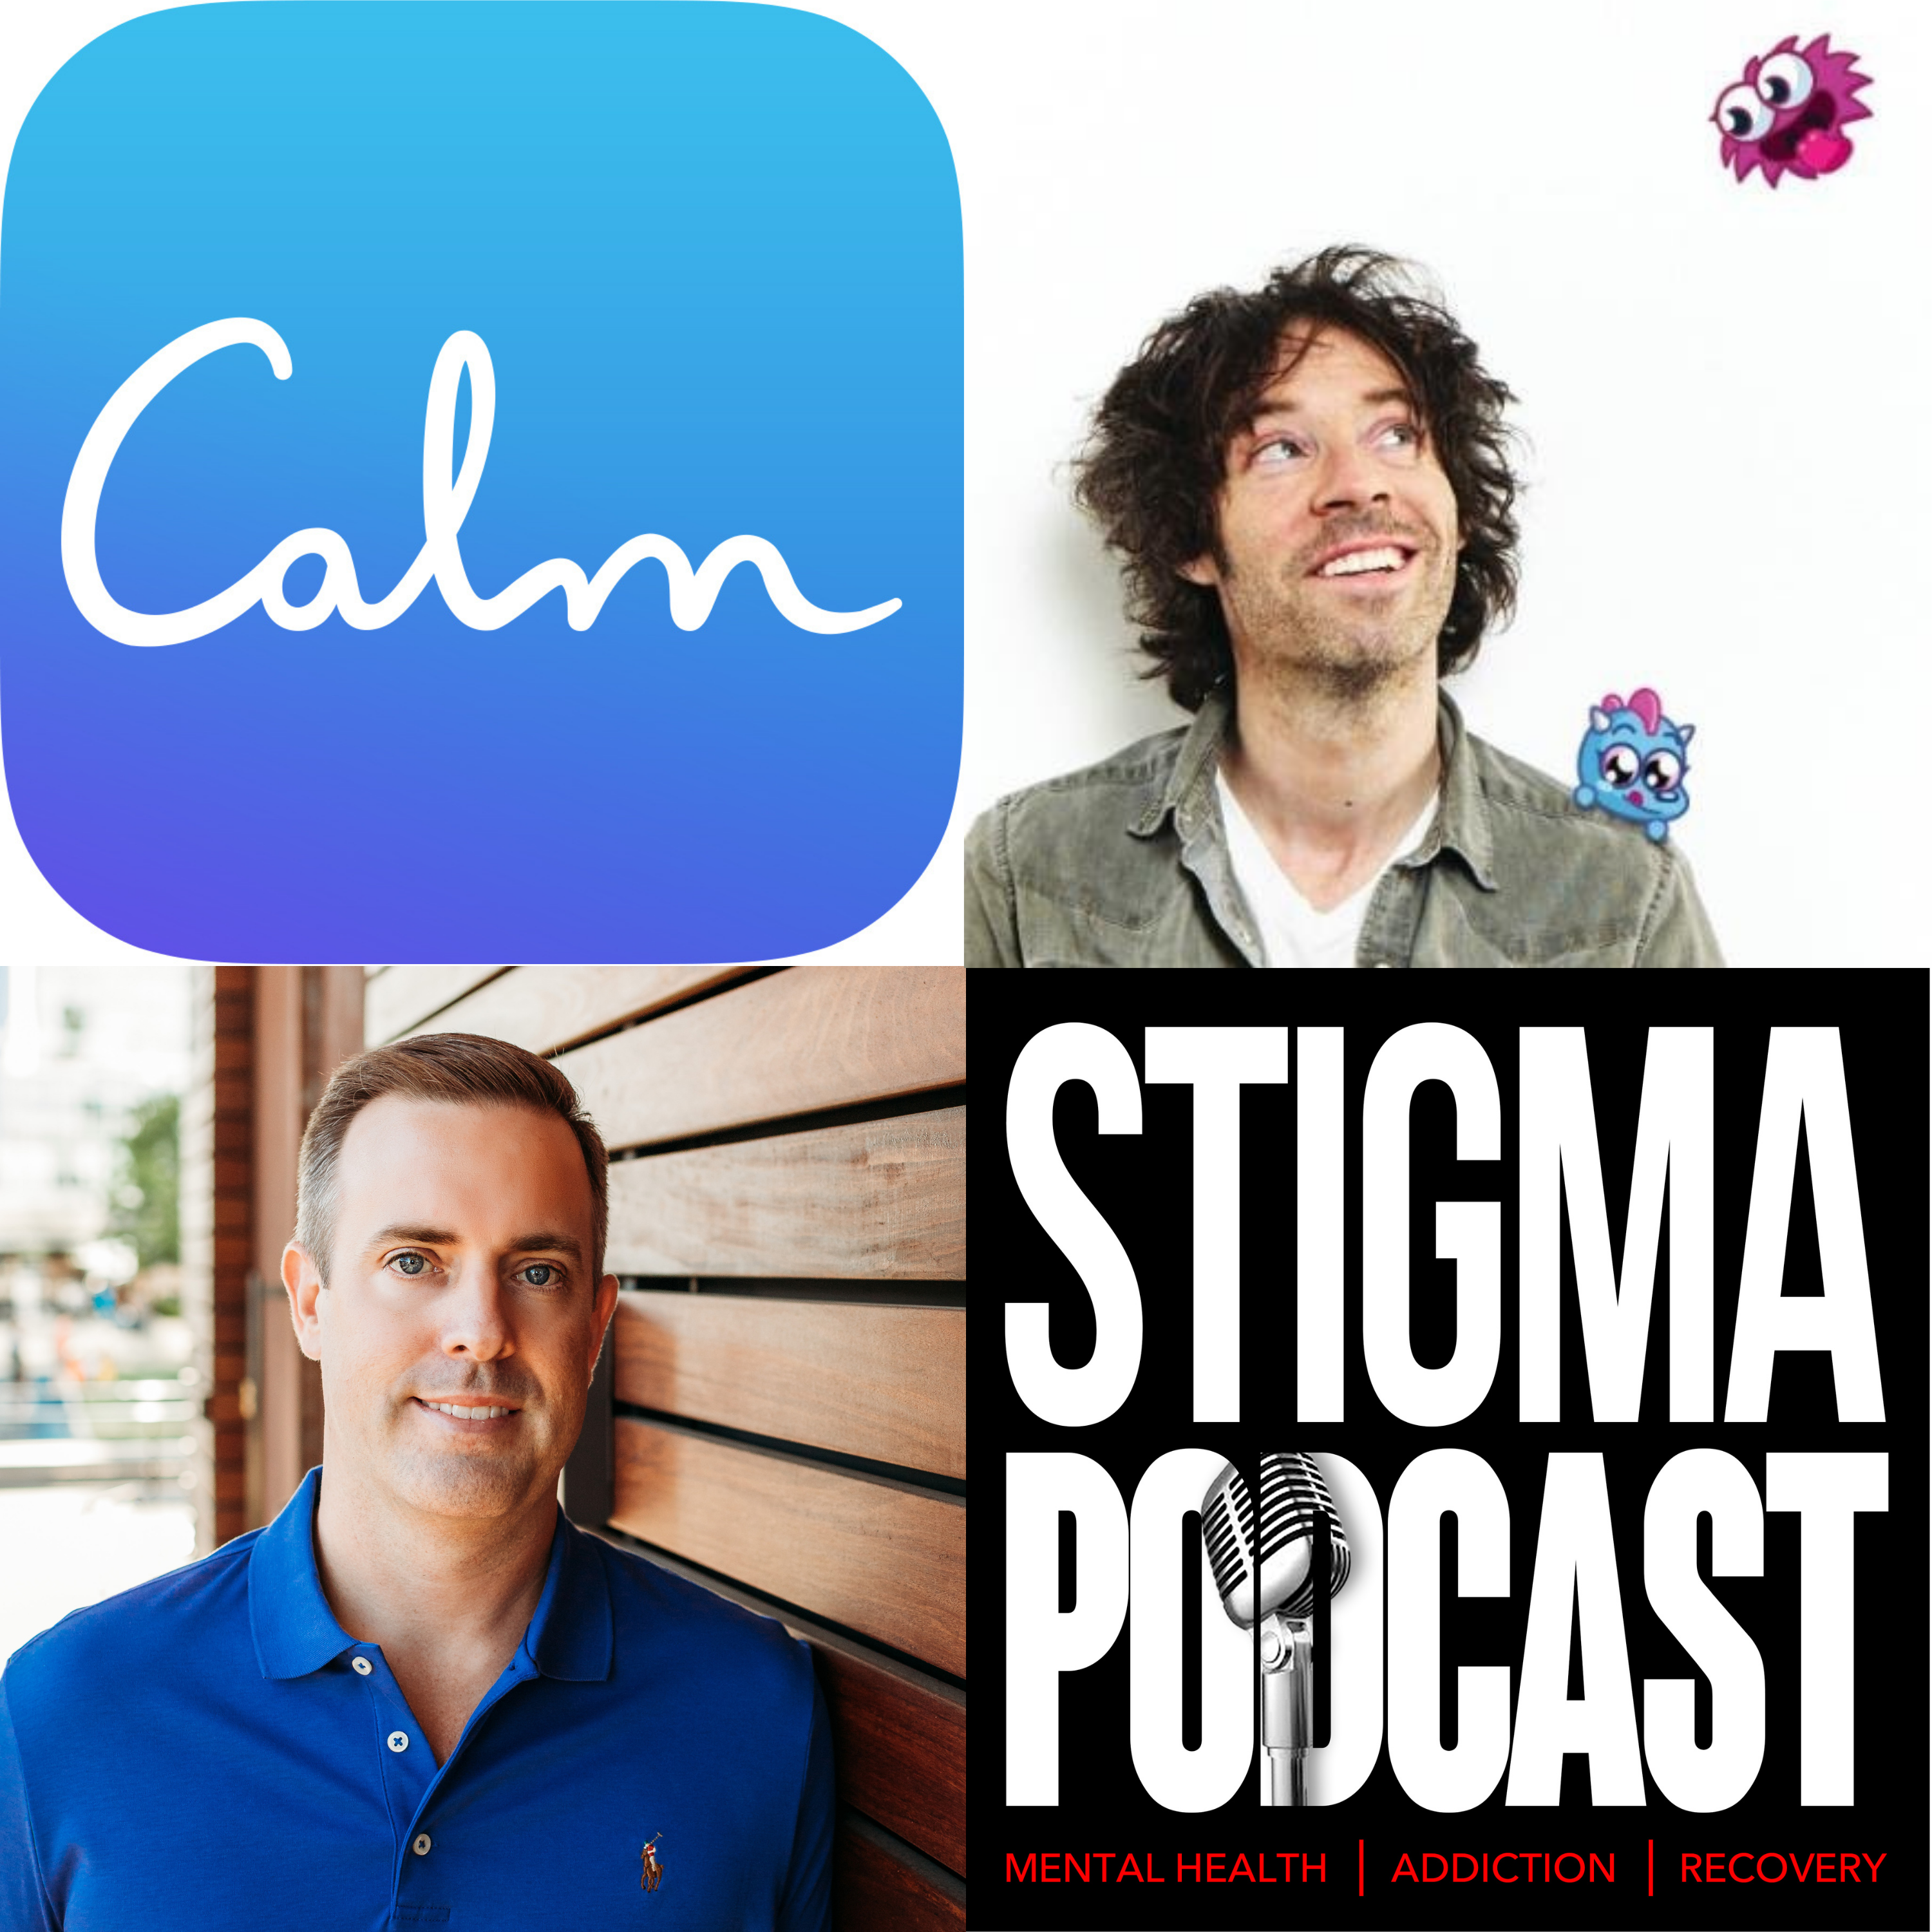 Stigma Podcast - Mental Health - #71 - Calm Co-Founder, Michael Acton Smith a Pioneer in Mental Health and Wellness